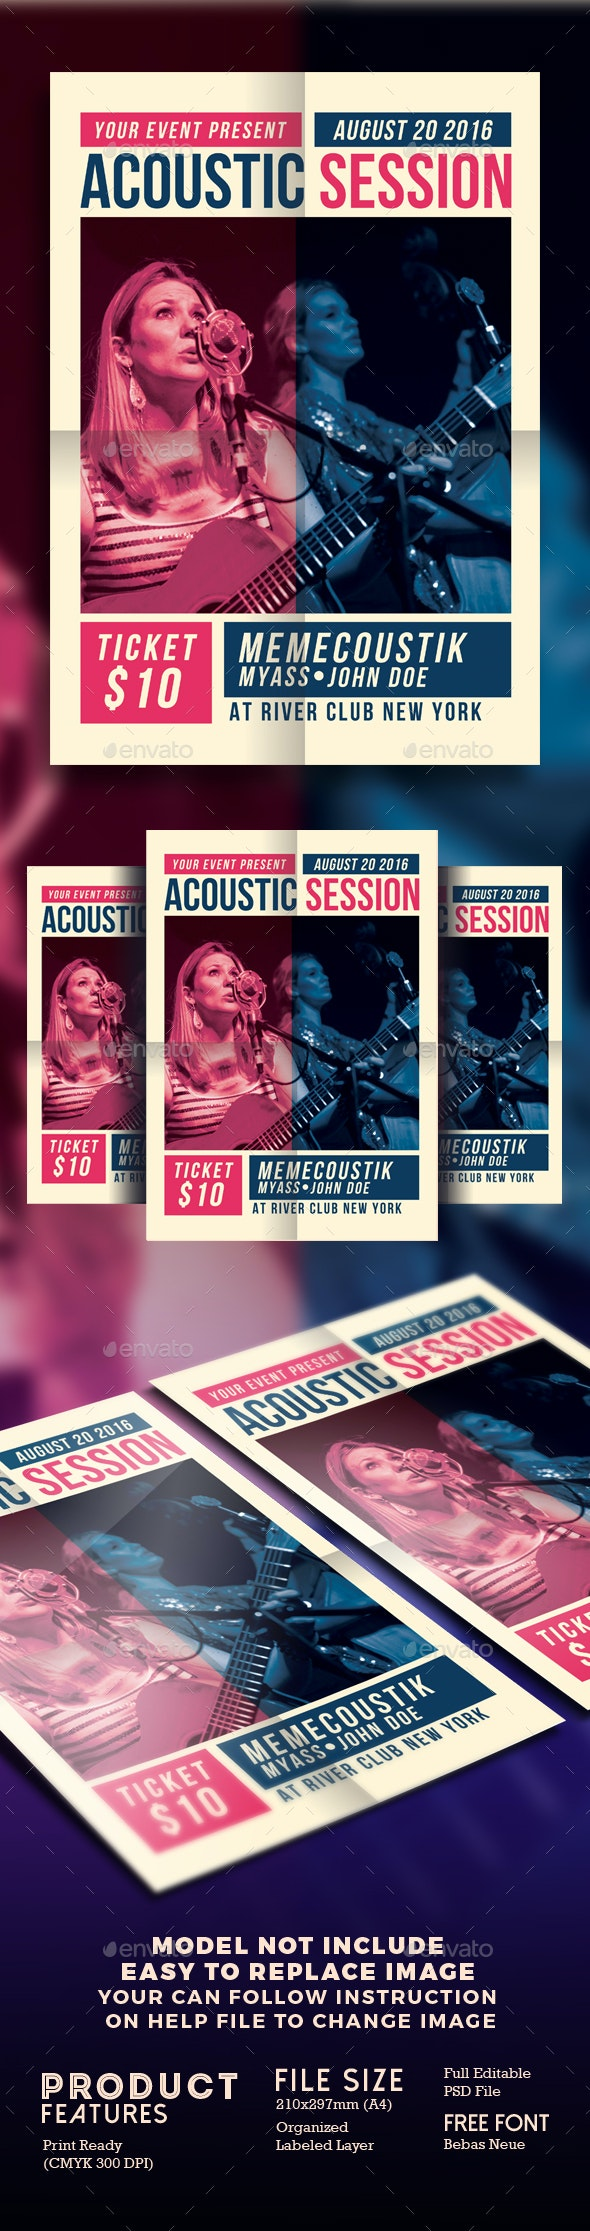 Acoustic Session Flyer - Events Flyers